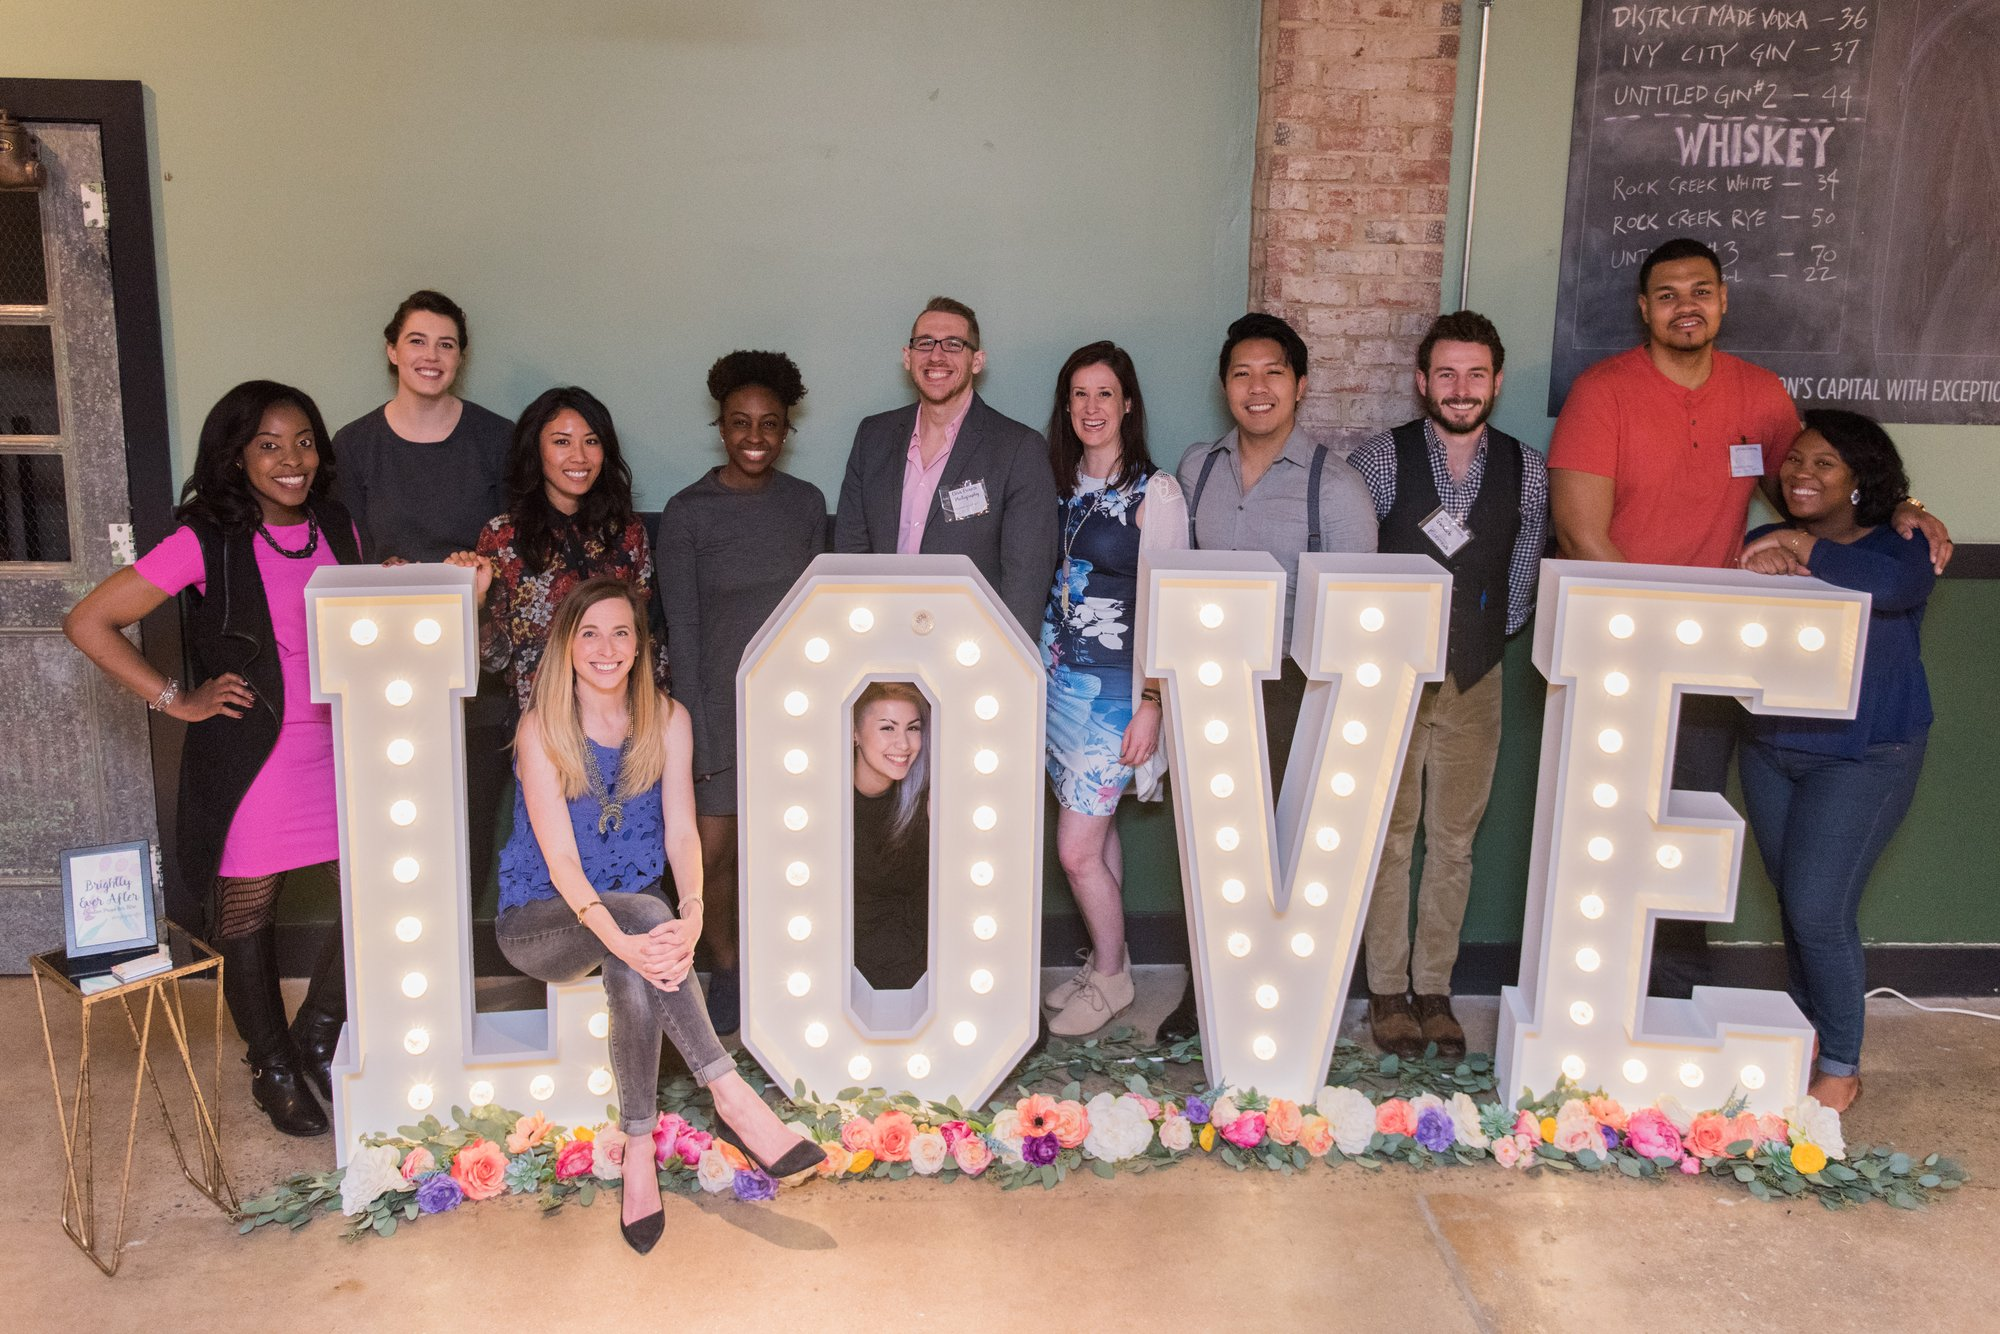 The entire team of vendors from the District Bliss Couples Social at One Eight Distilling in Ivy City, Washington, DC